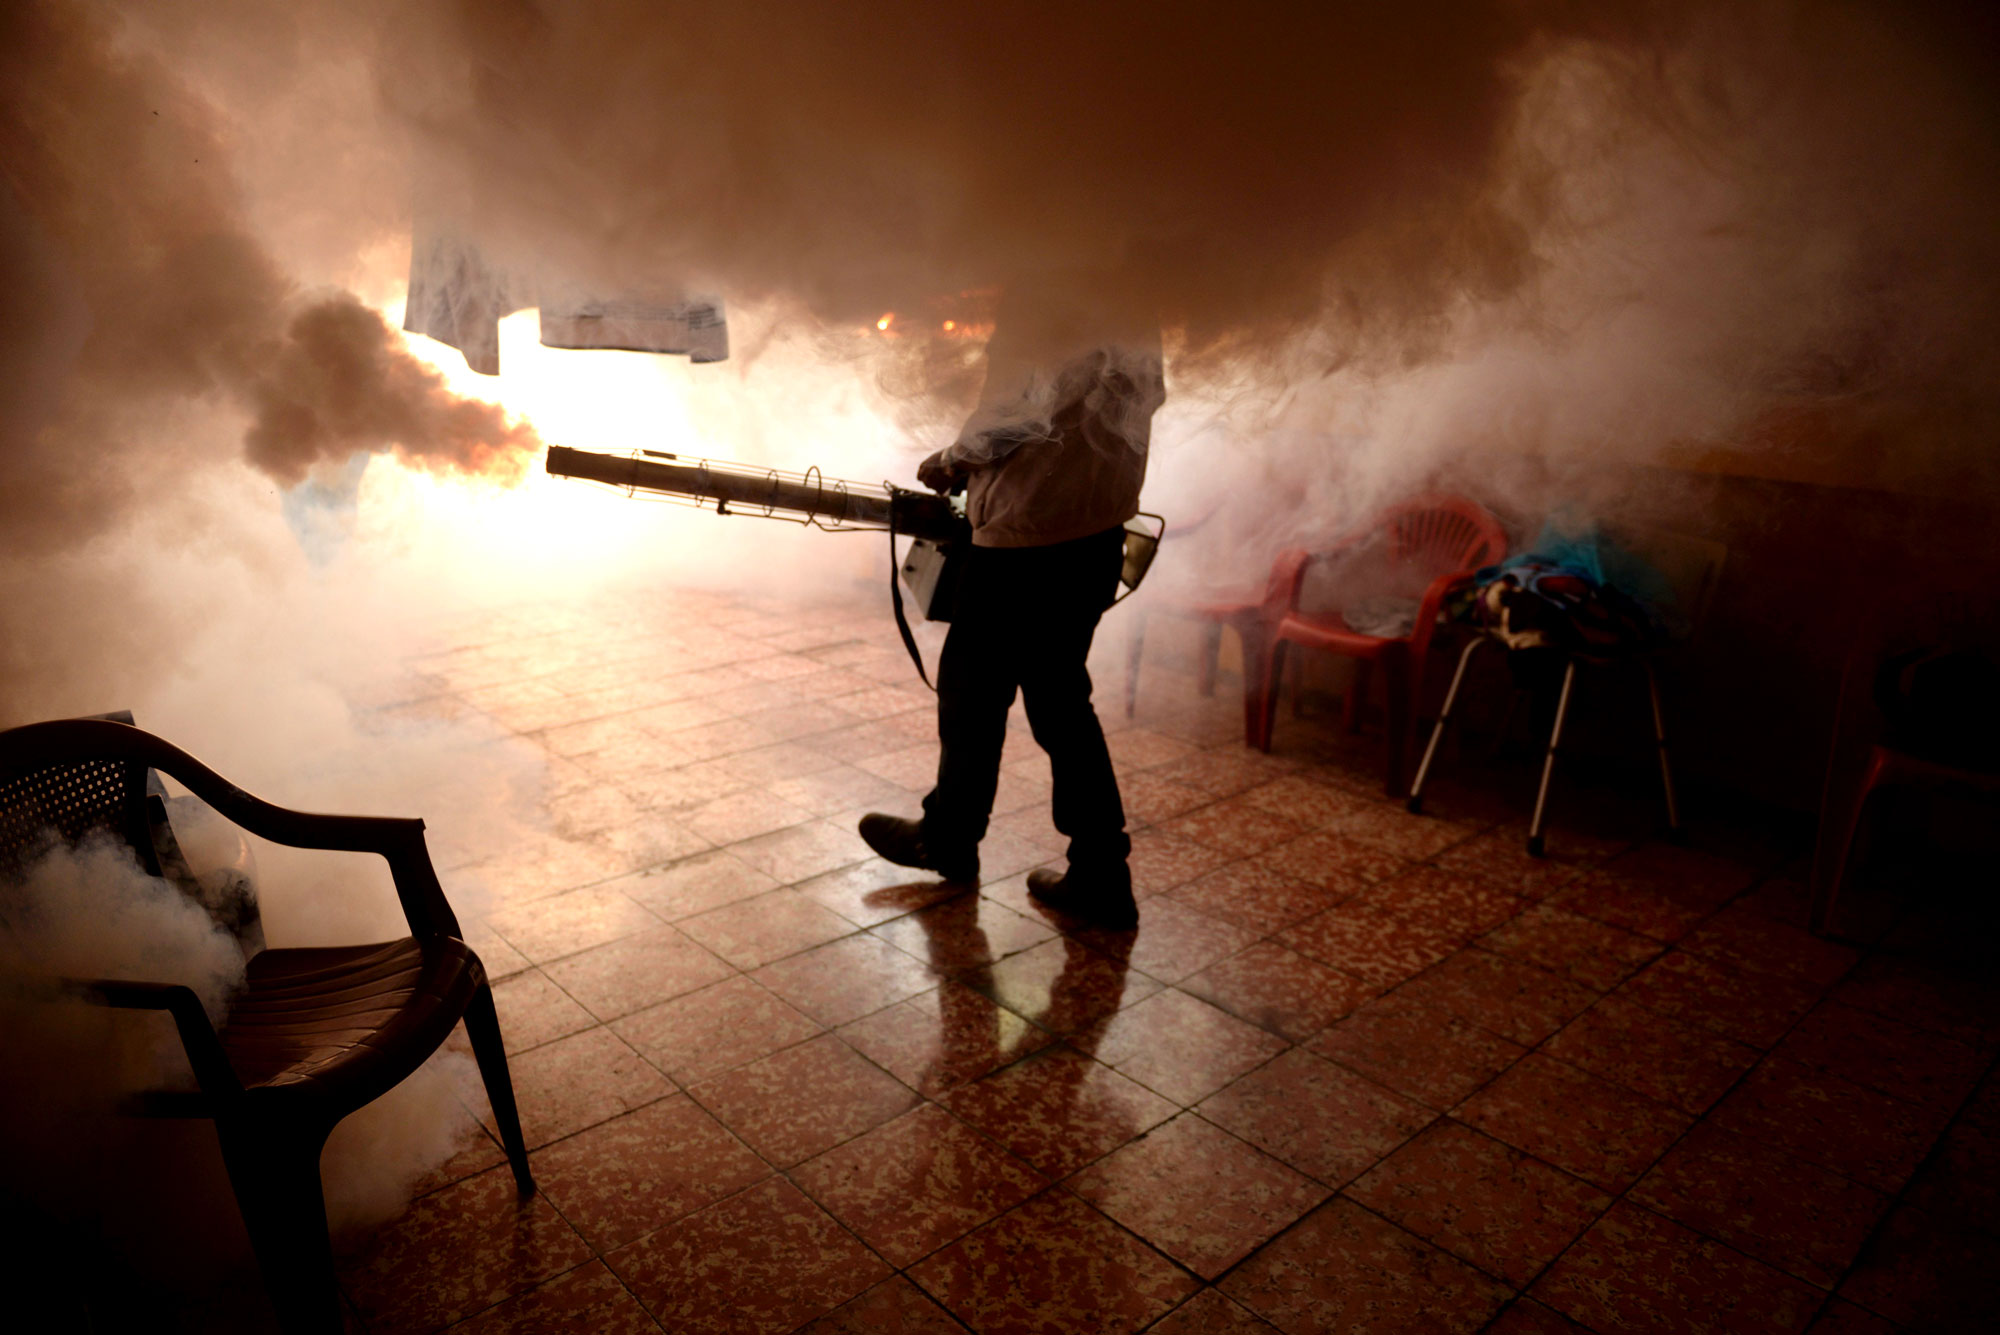 A health worker fumigates a home in El Salvador against mosquitoes to prevent the spread of the Zika virus.